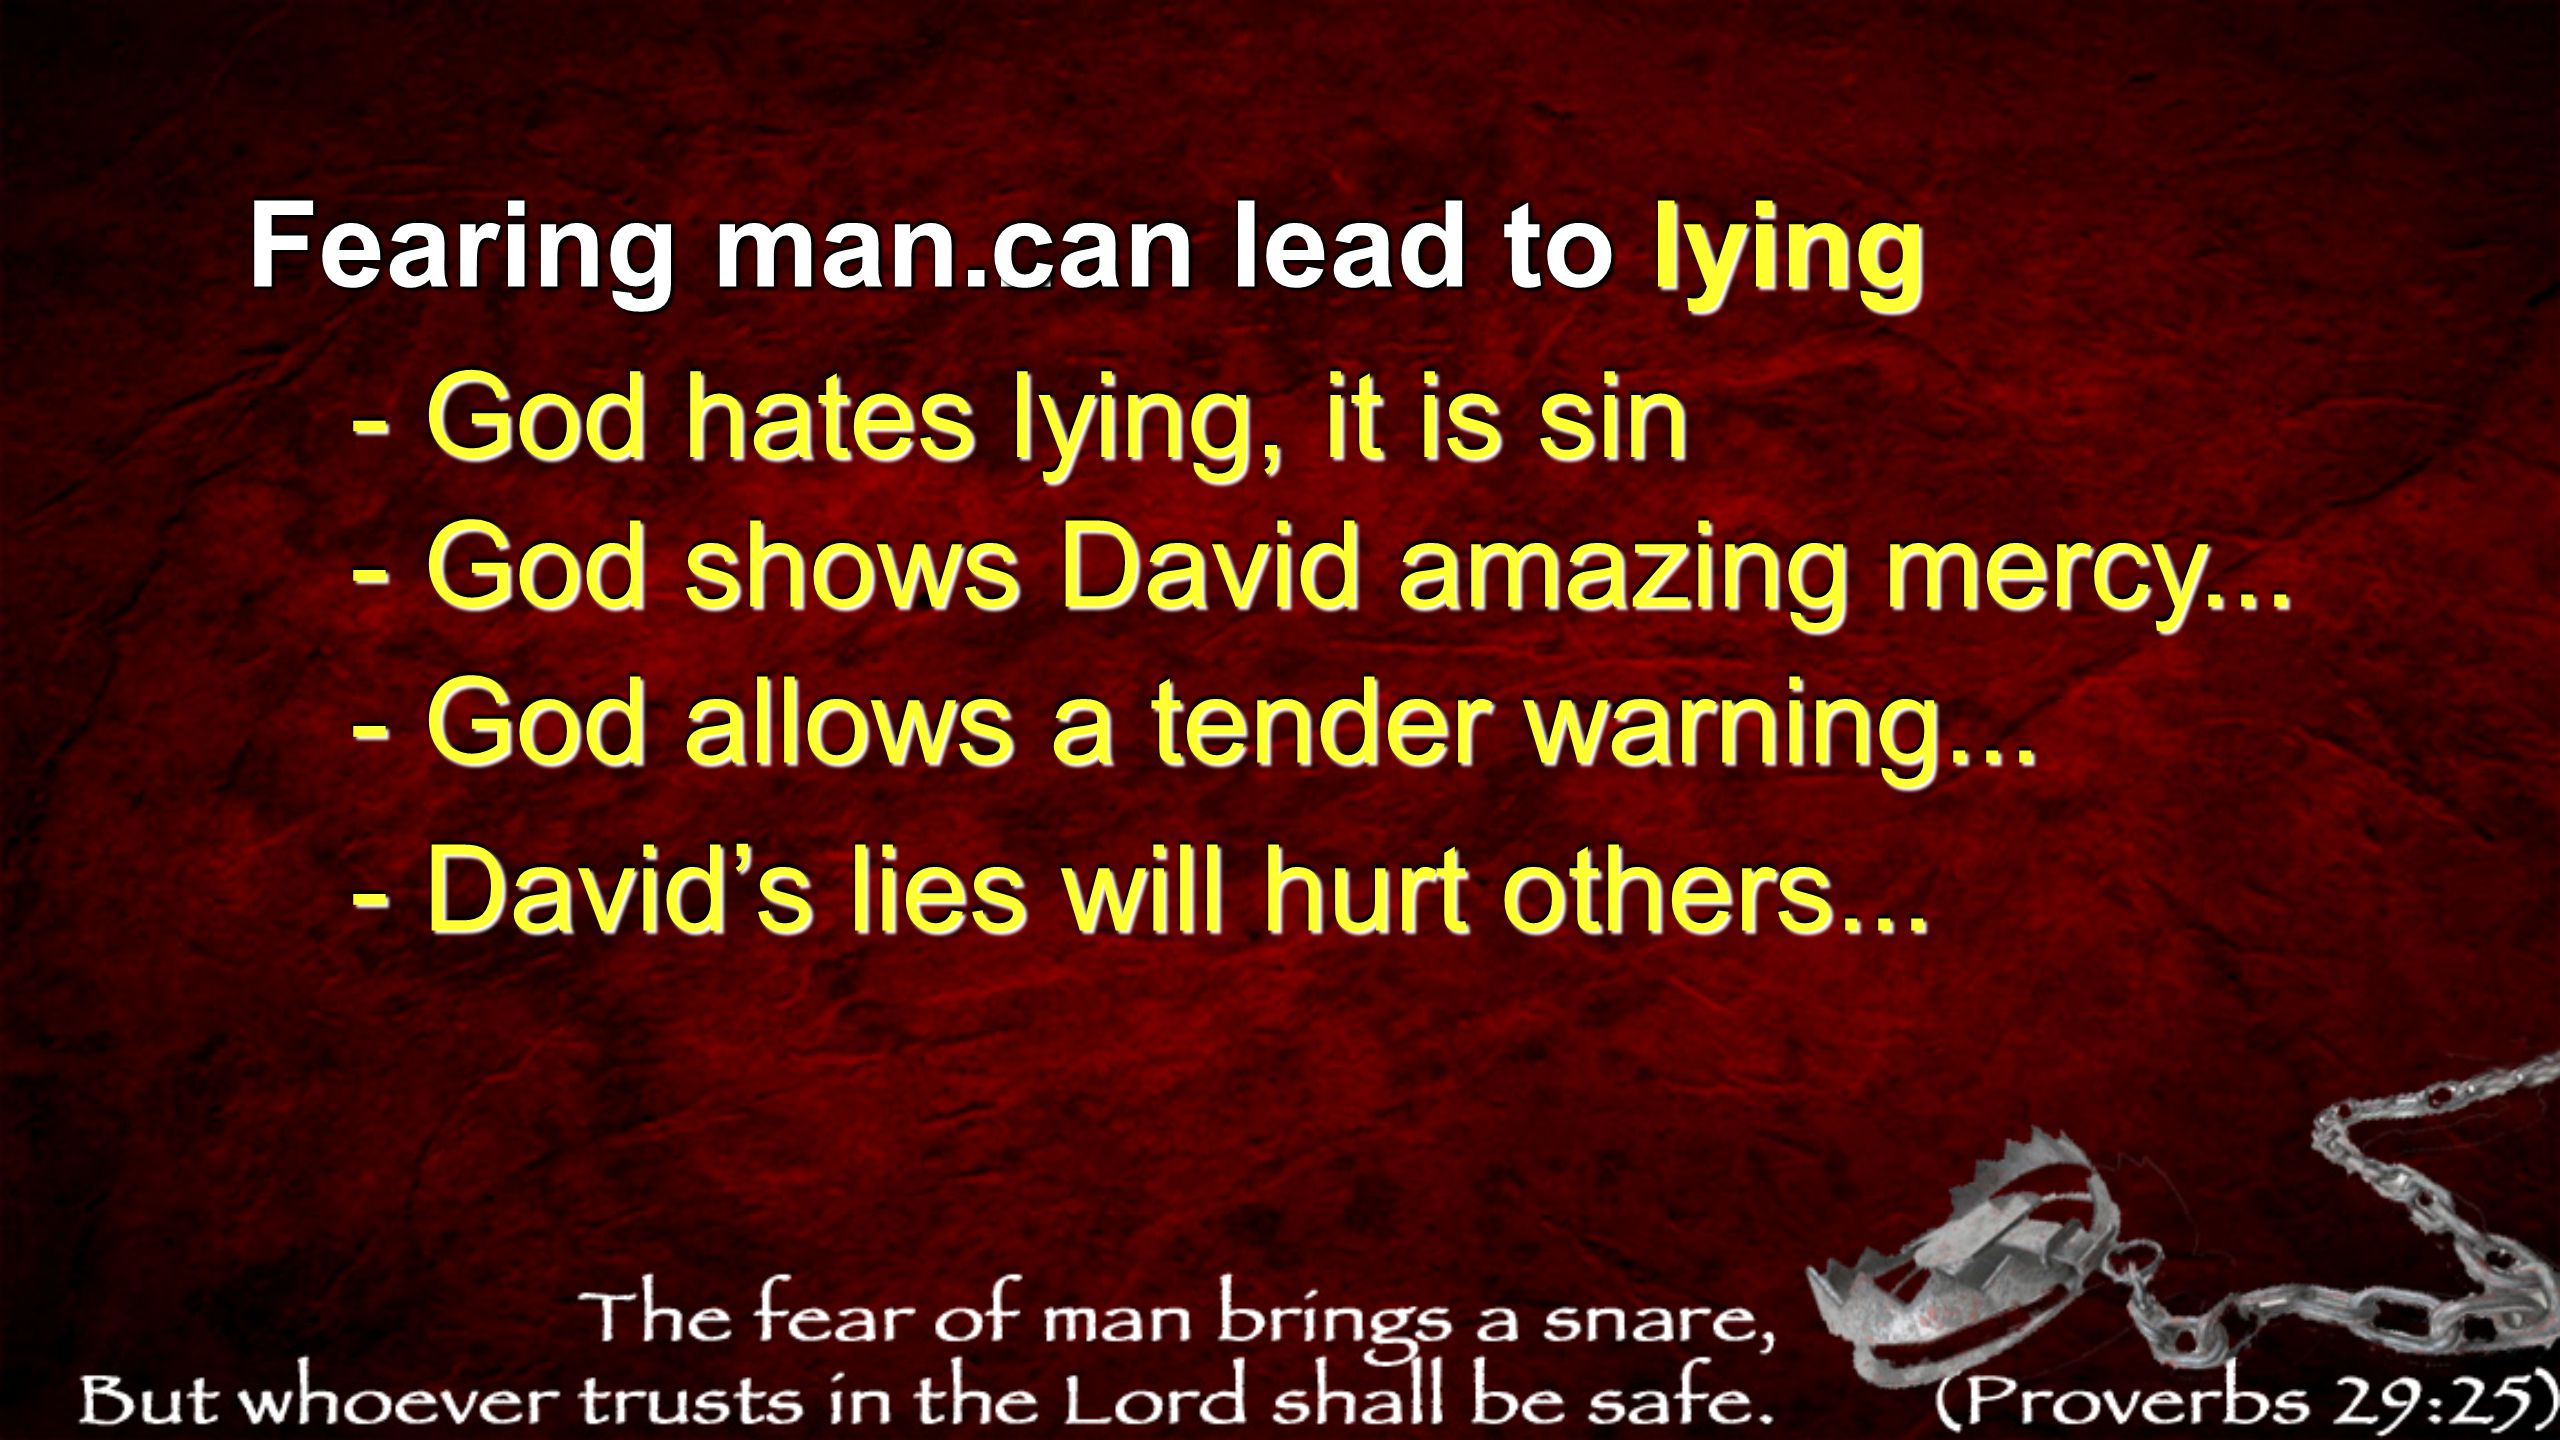 Fearing man... can lead to lying. - God hates lying, it is sin. - God shows David amazing mercy...